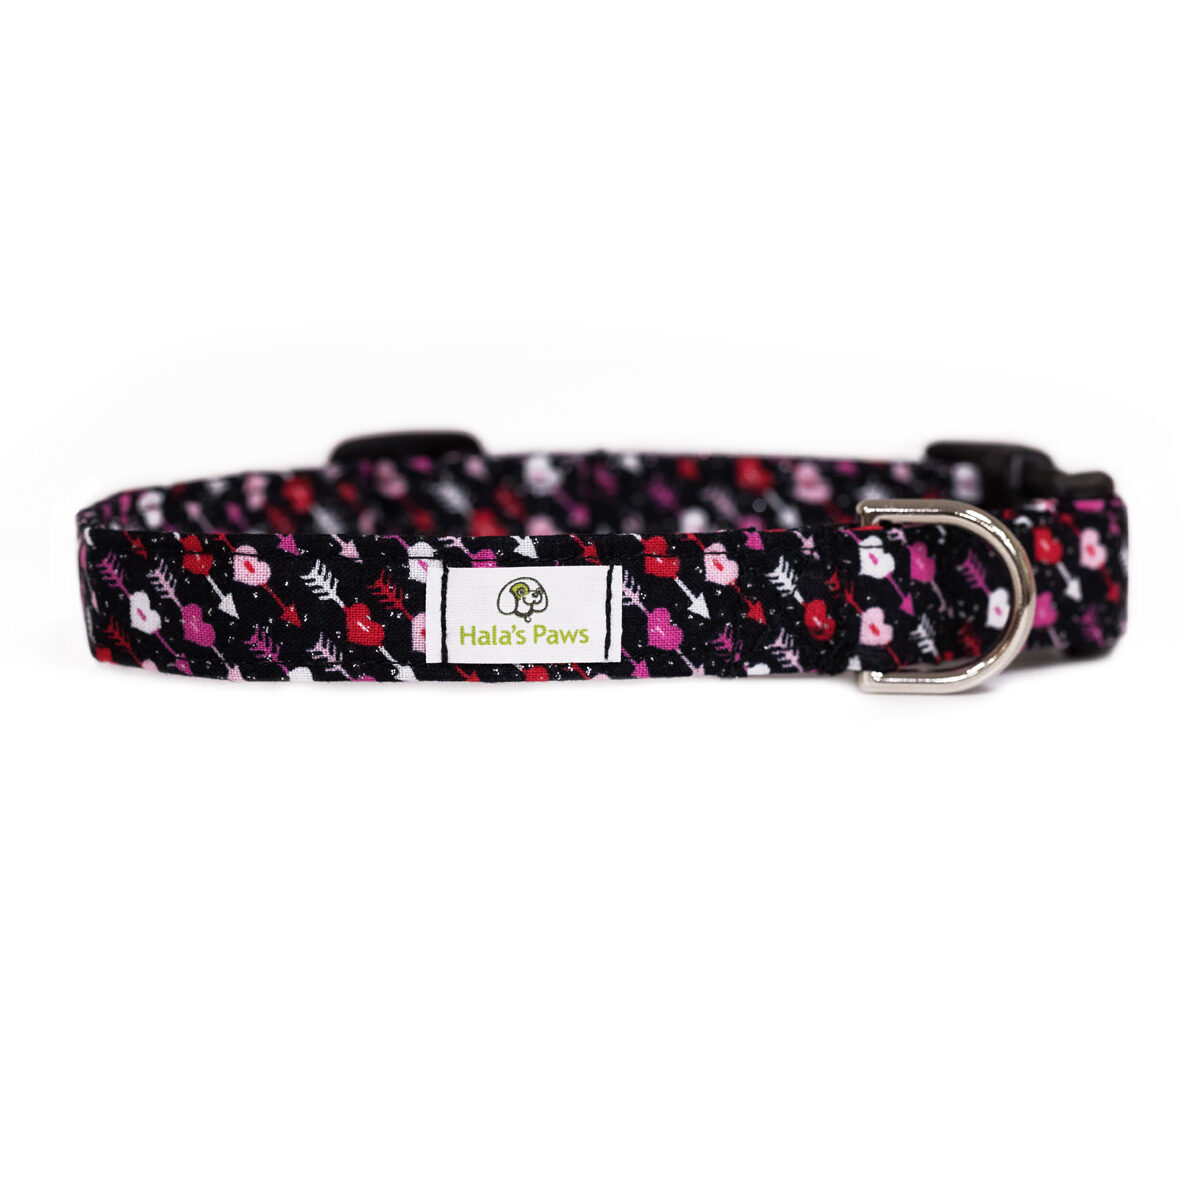 Hala's Paws Collar - Black Glitter Hearts and Arrows